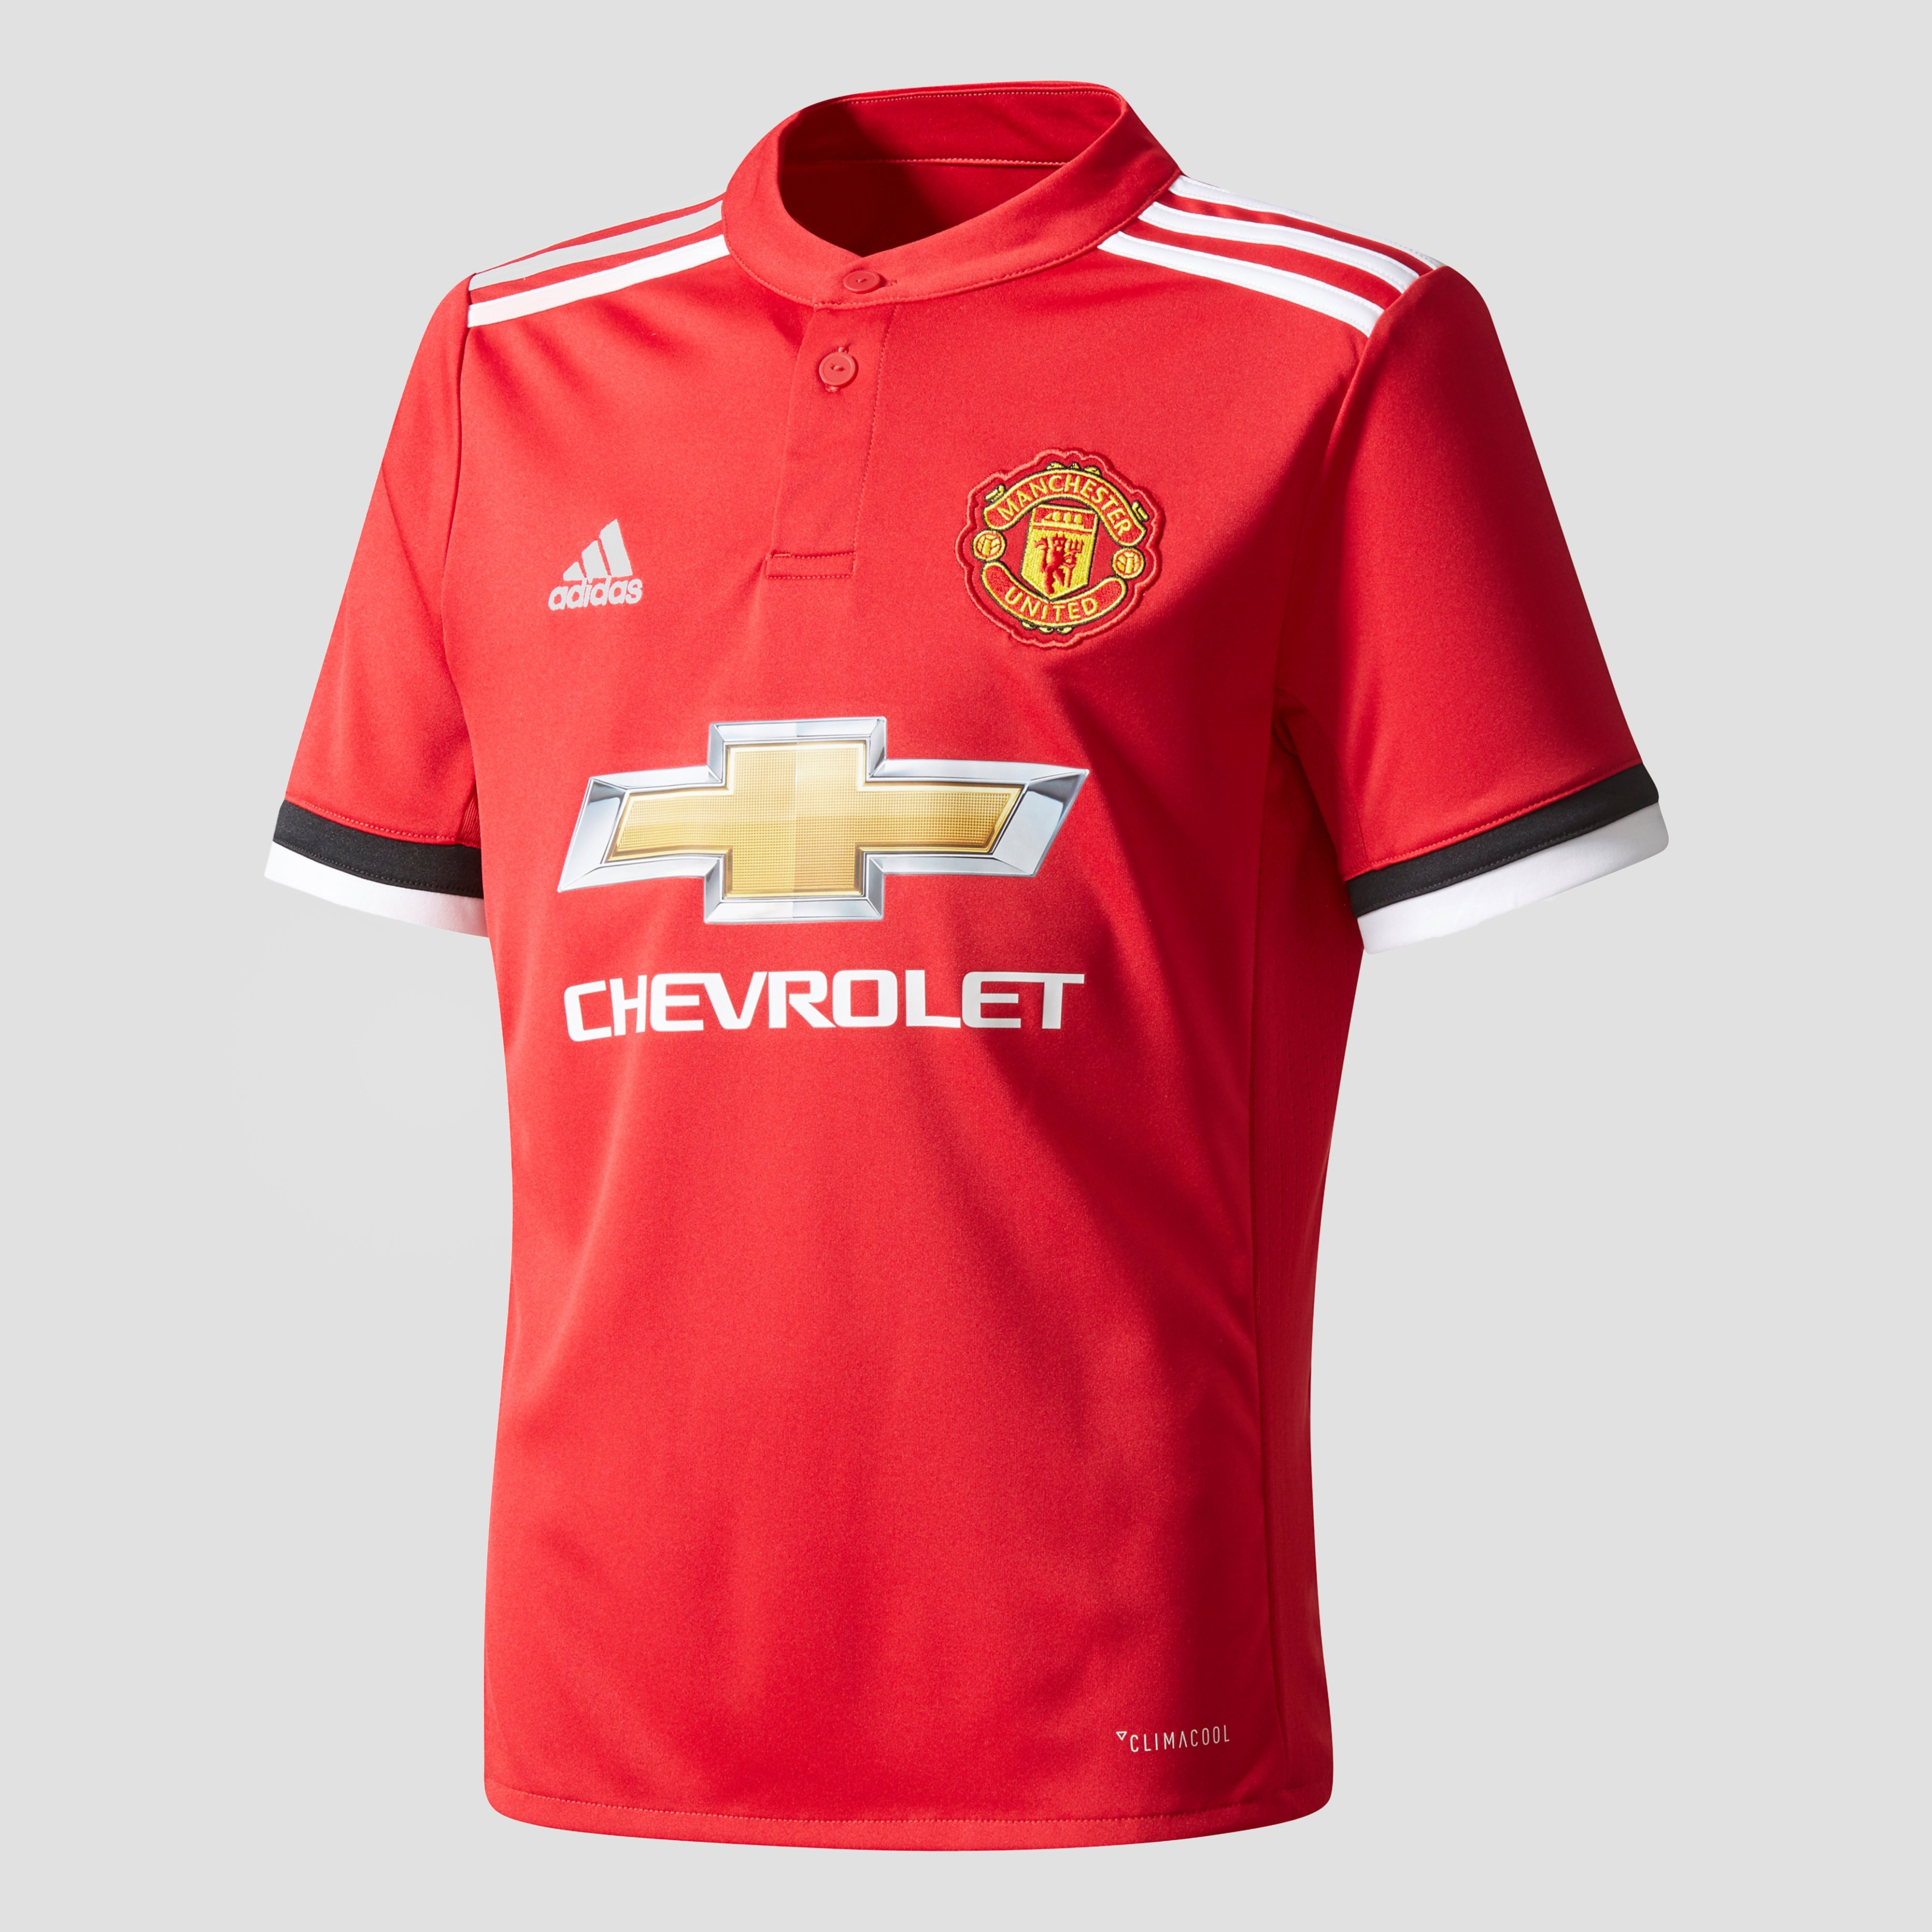 ADIDAS MANCHESTER UNITED FC THUISSHIRT ROOD/WIT KINDEREN